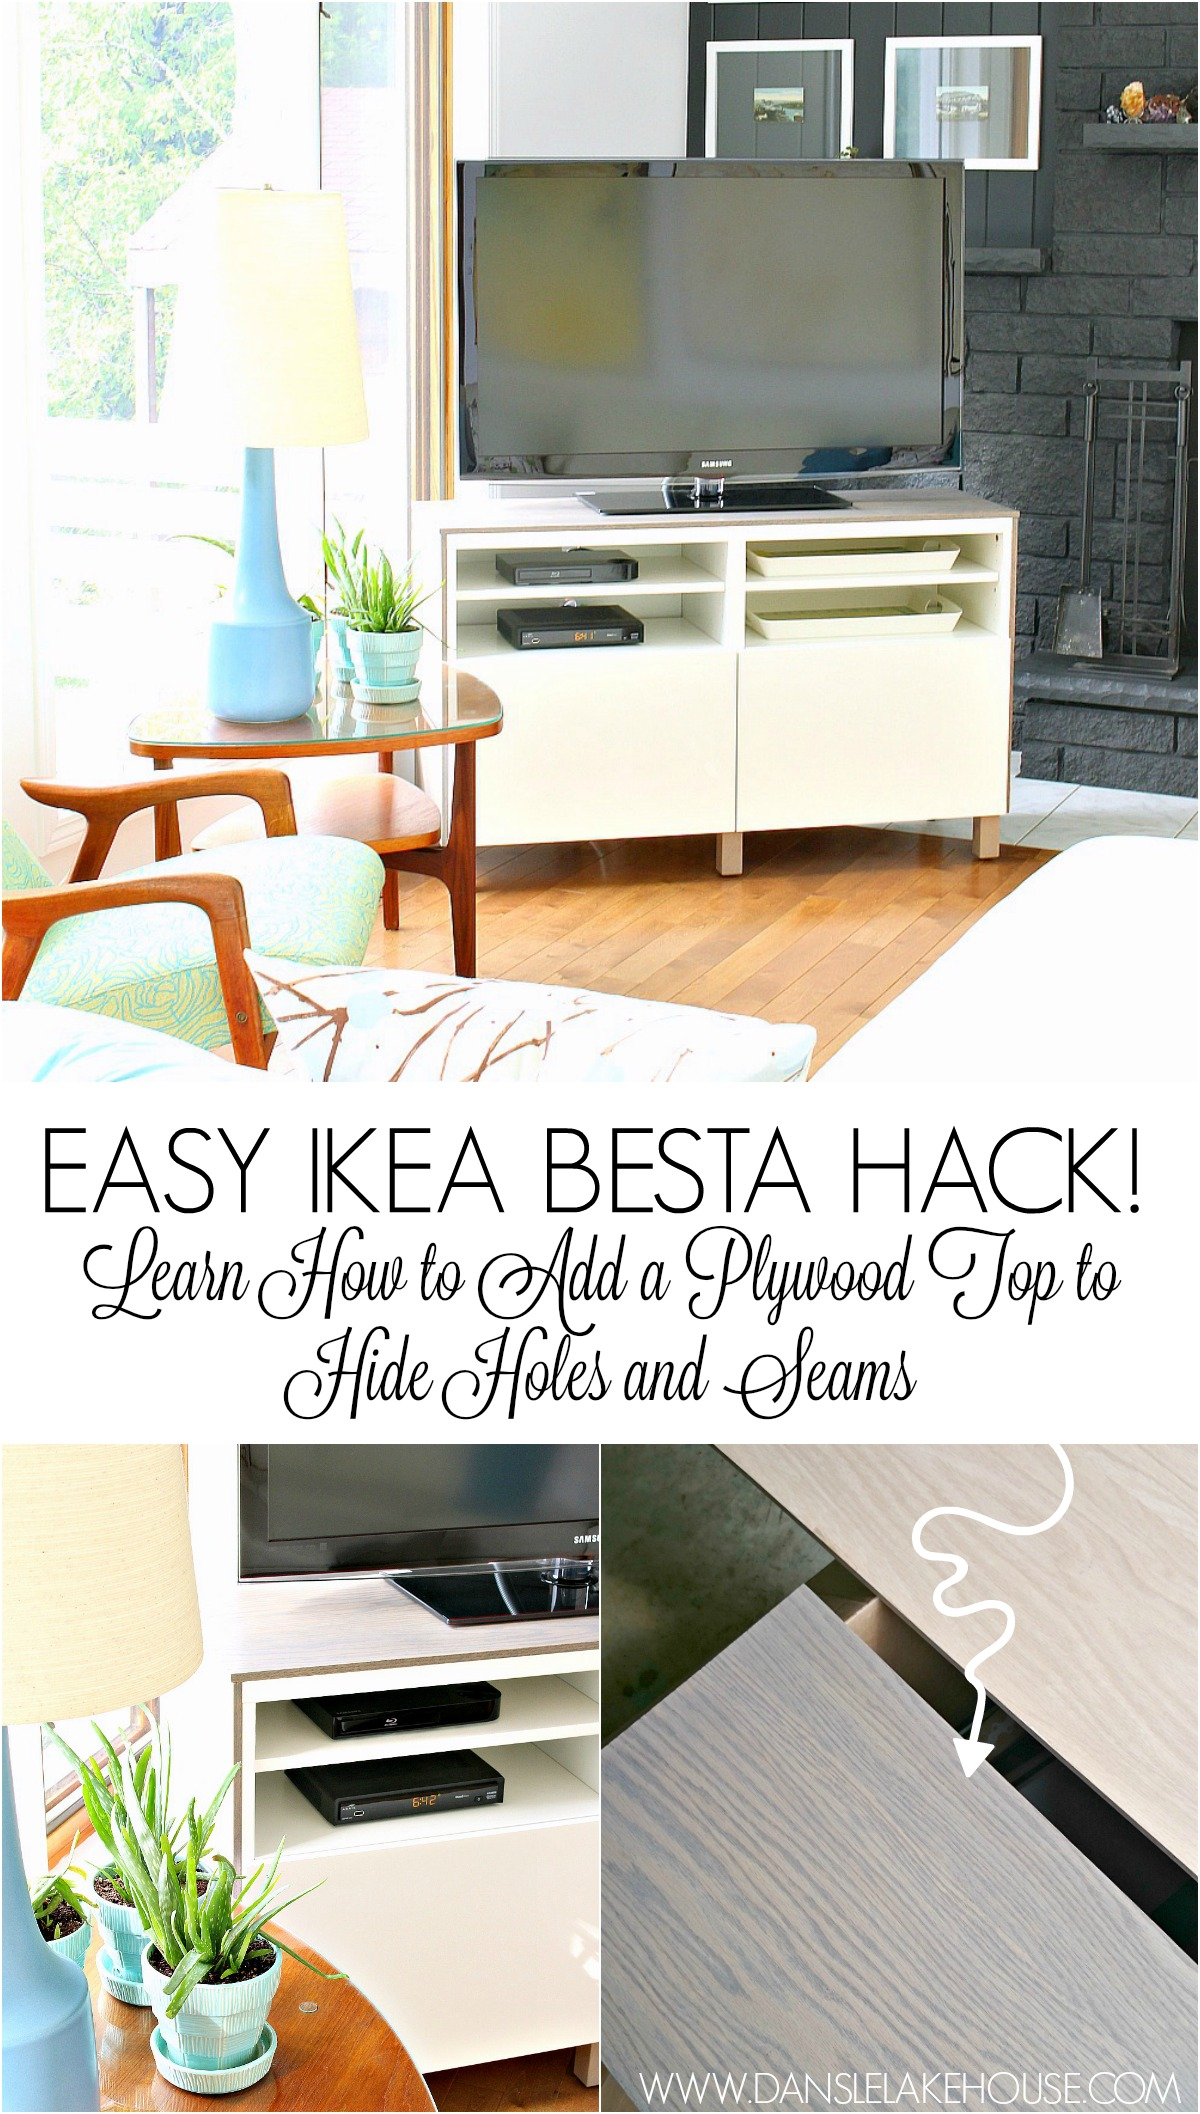 Ikea Besta Hack 2.0 | DIY Besta TV Stand with Wood Top #ikeahack #ikeabesta #savingmoney #furnituremakeover